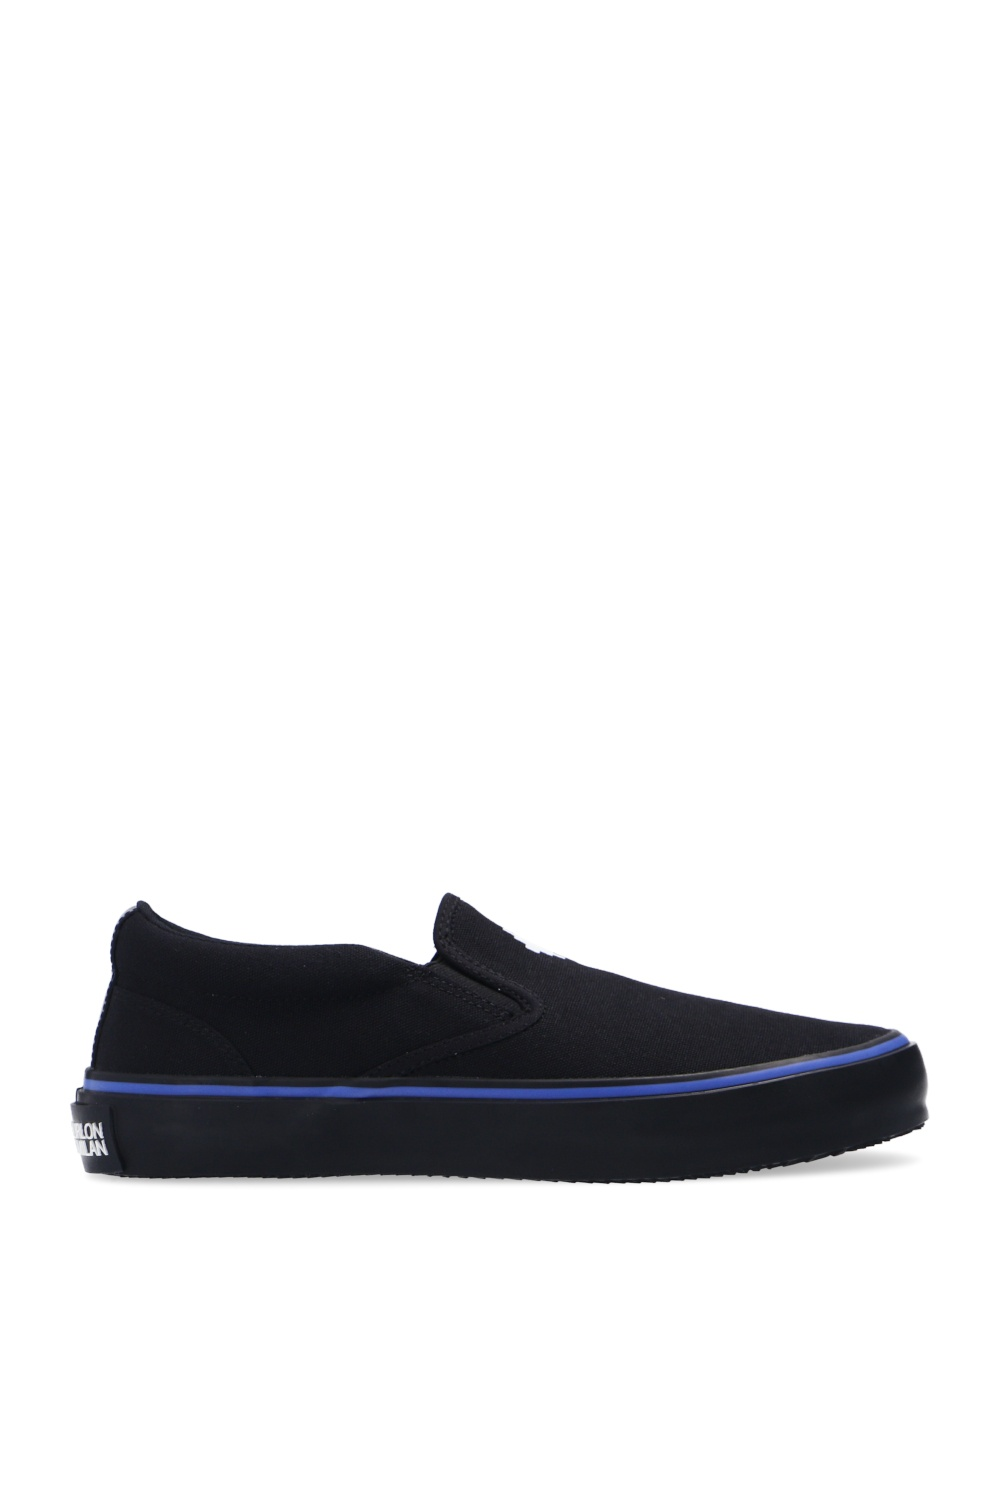 Marcelo Burlon Slip-on sneakers